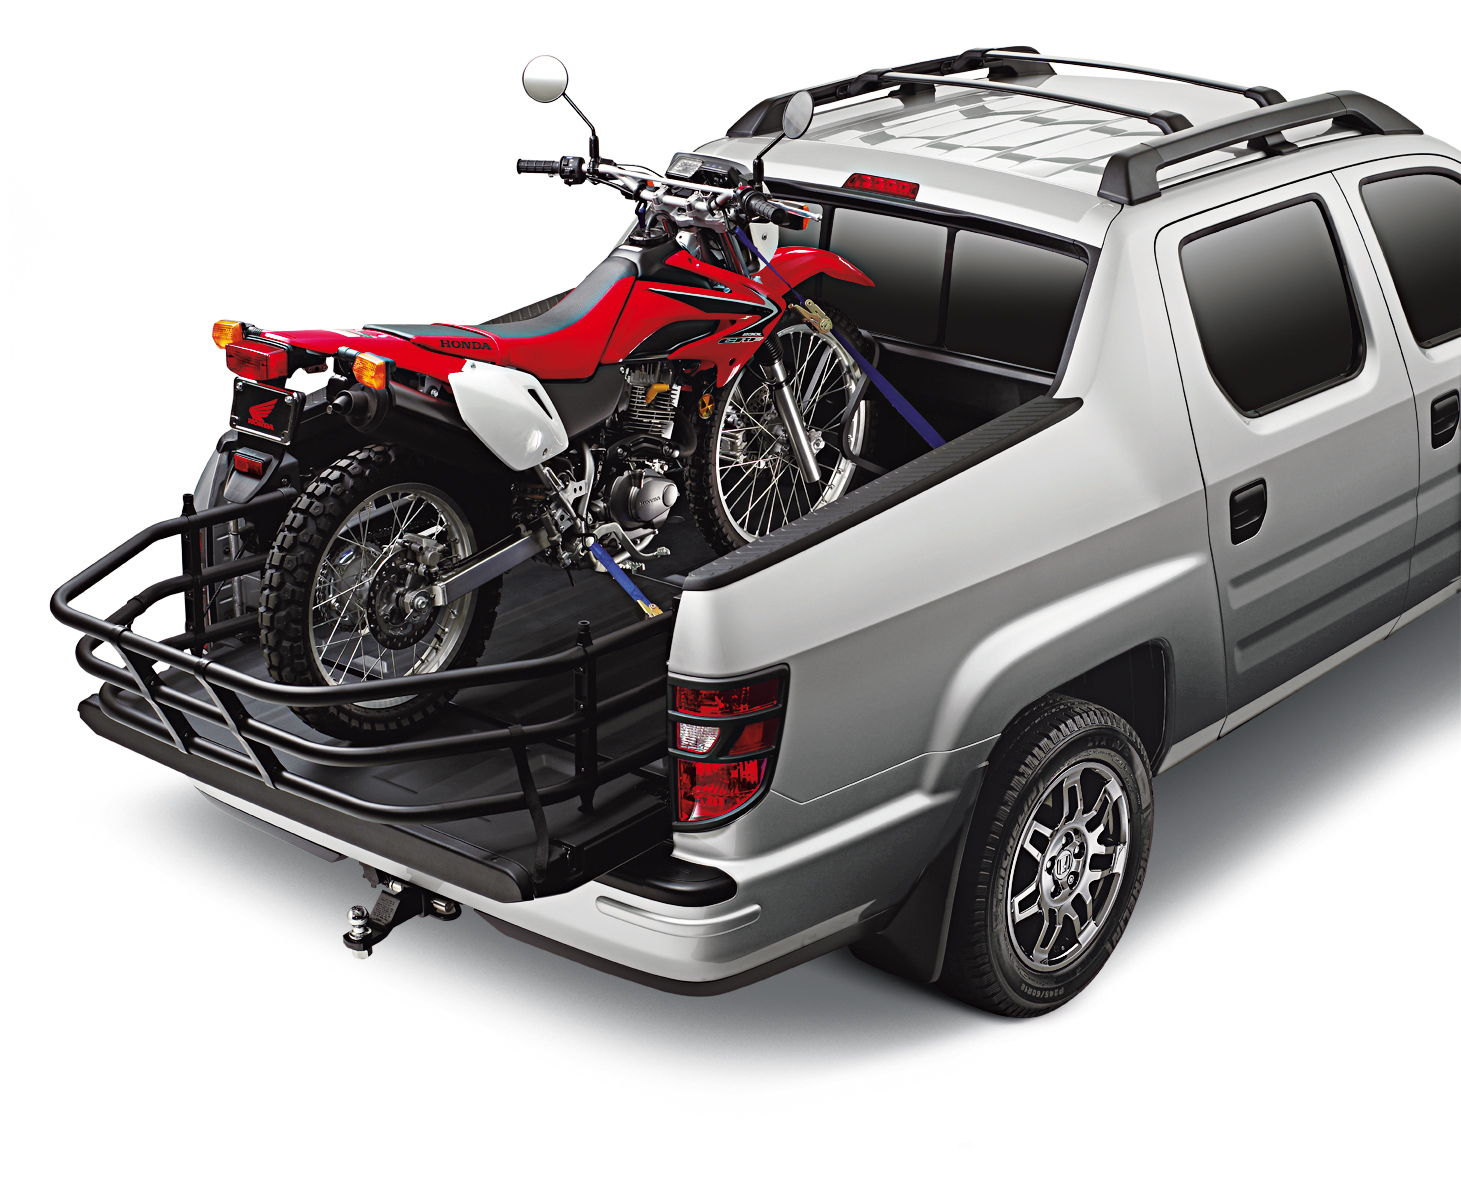 Motorcycle Bed Extender - $282.03